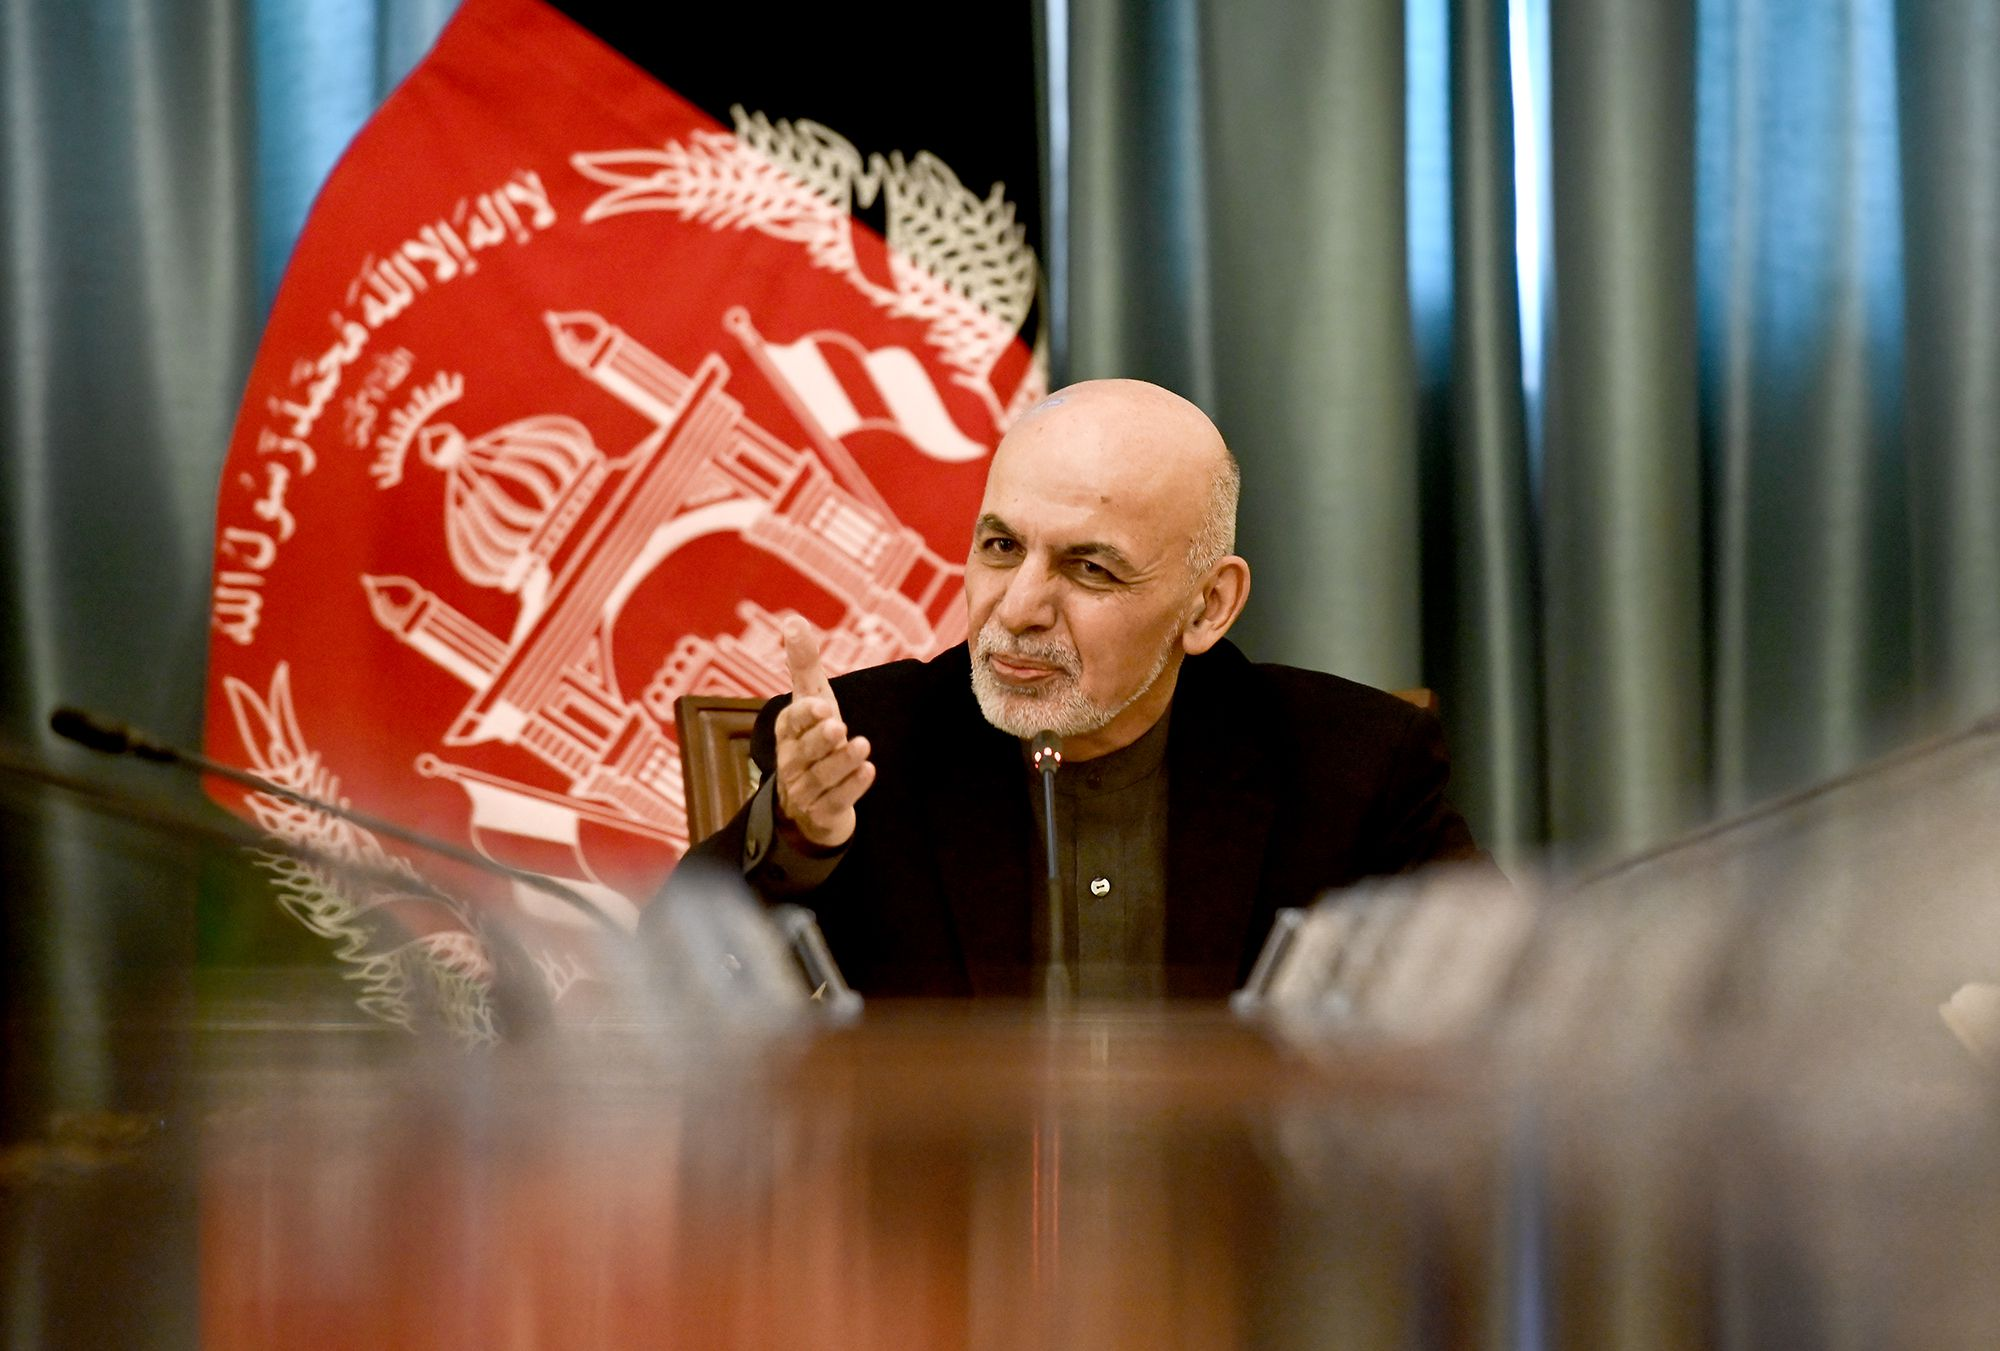 Ghani declared victor in Afghanistan's disputed presidential election - Axios